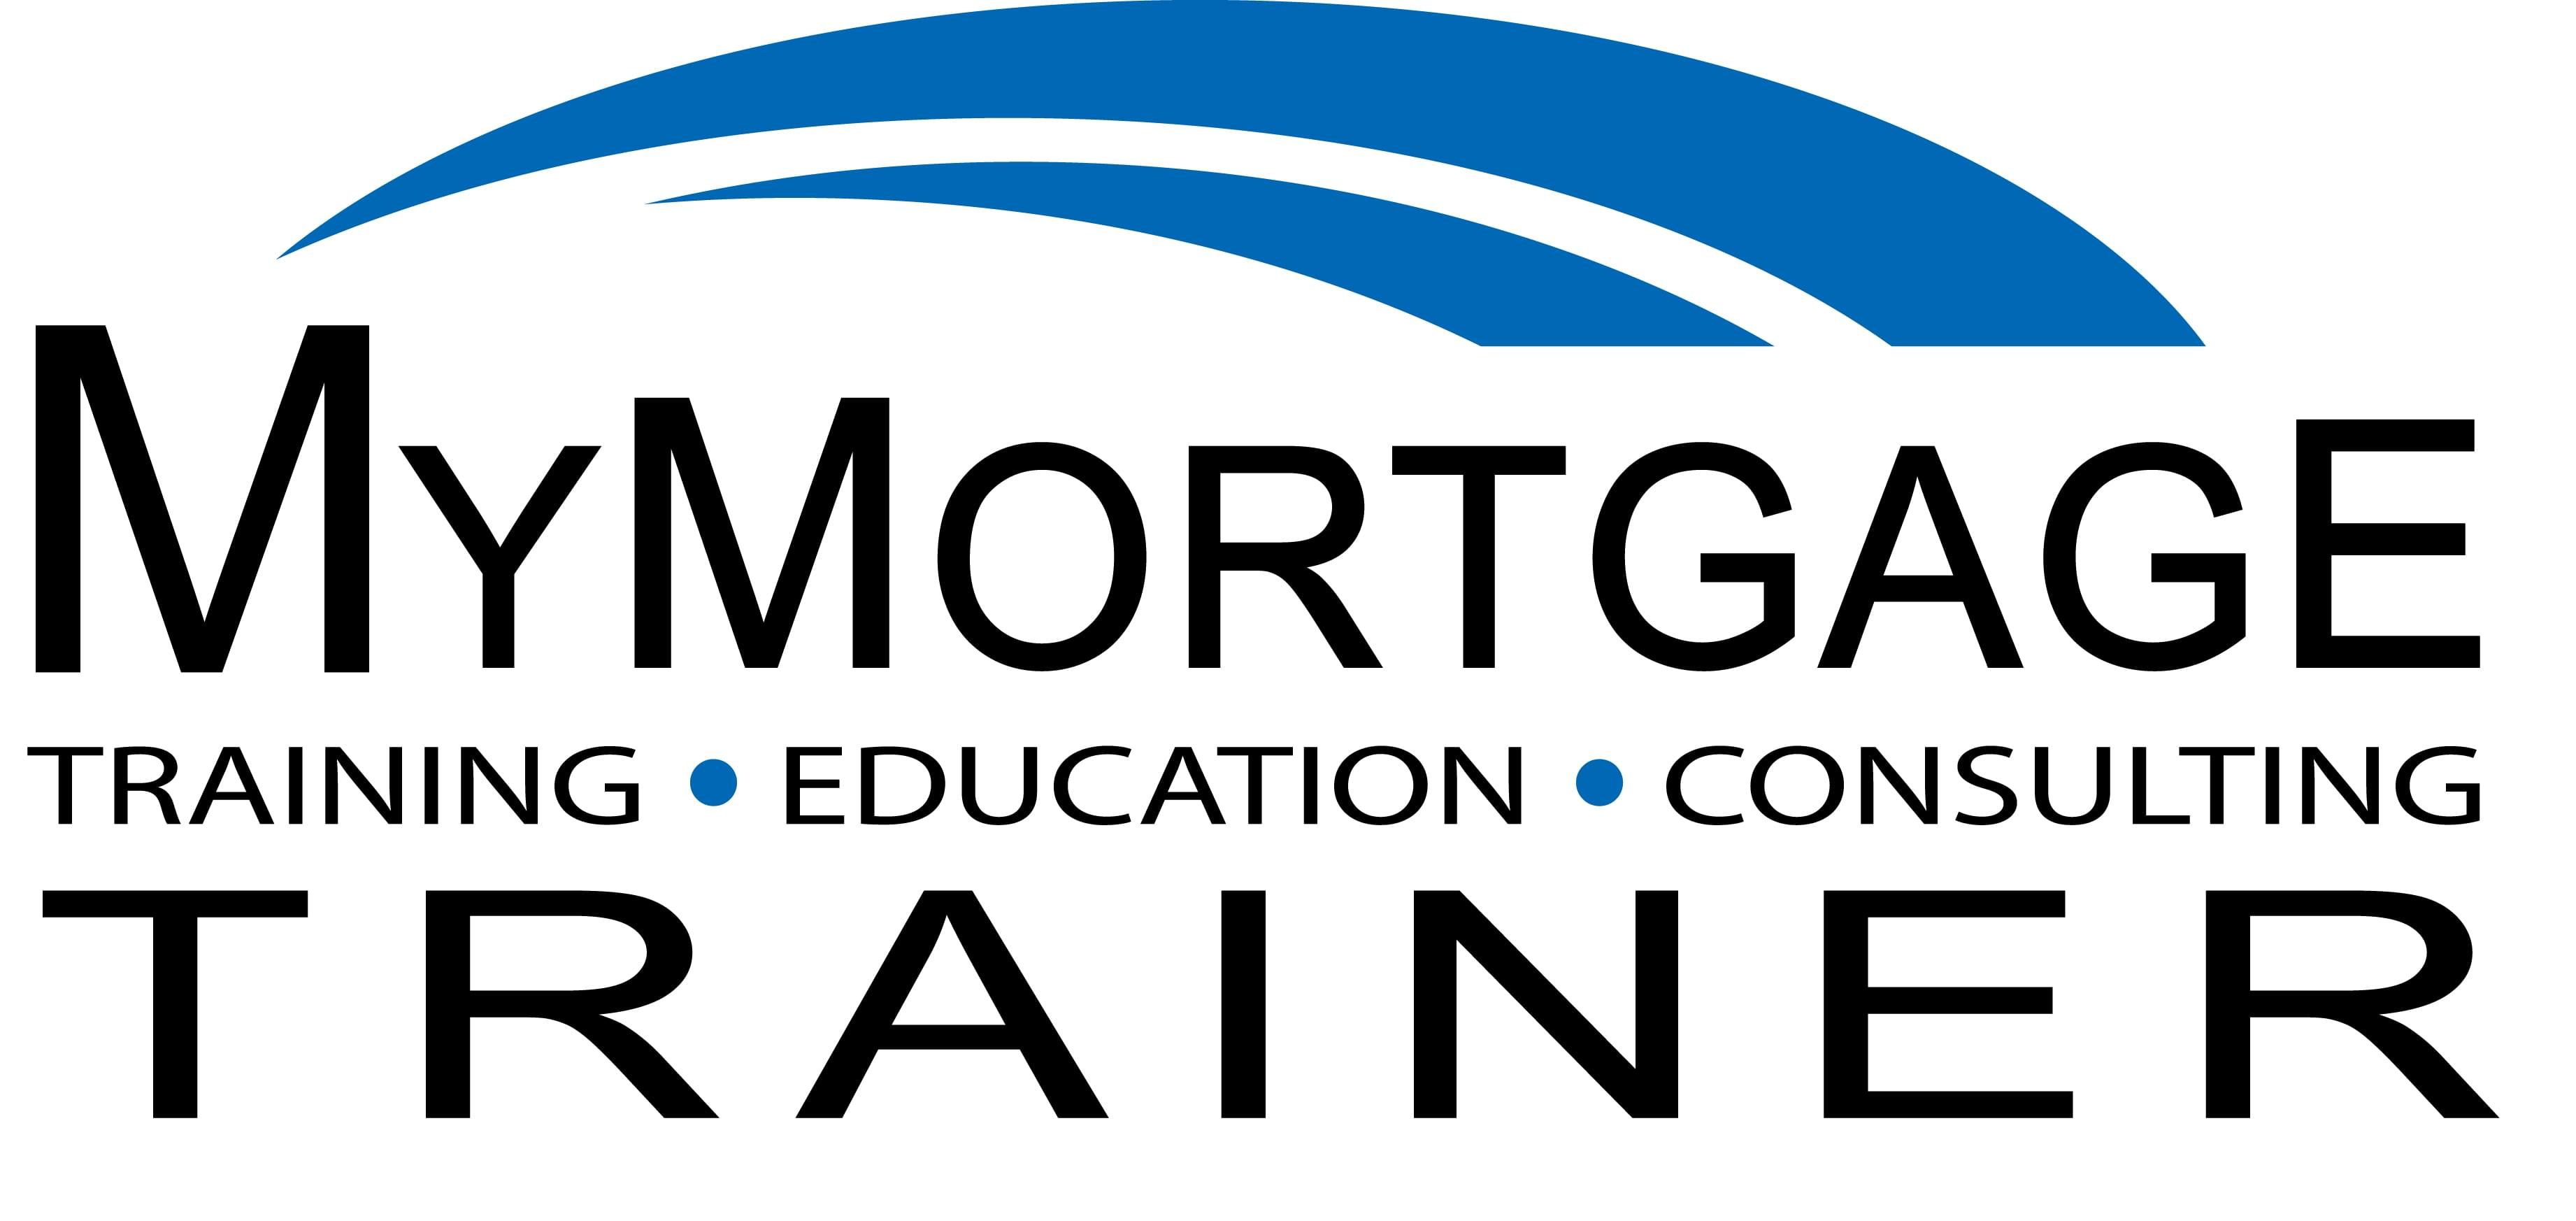 MyMortgageTrainer_LOGO_blue